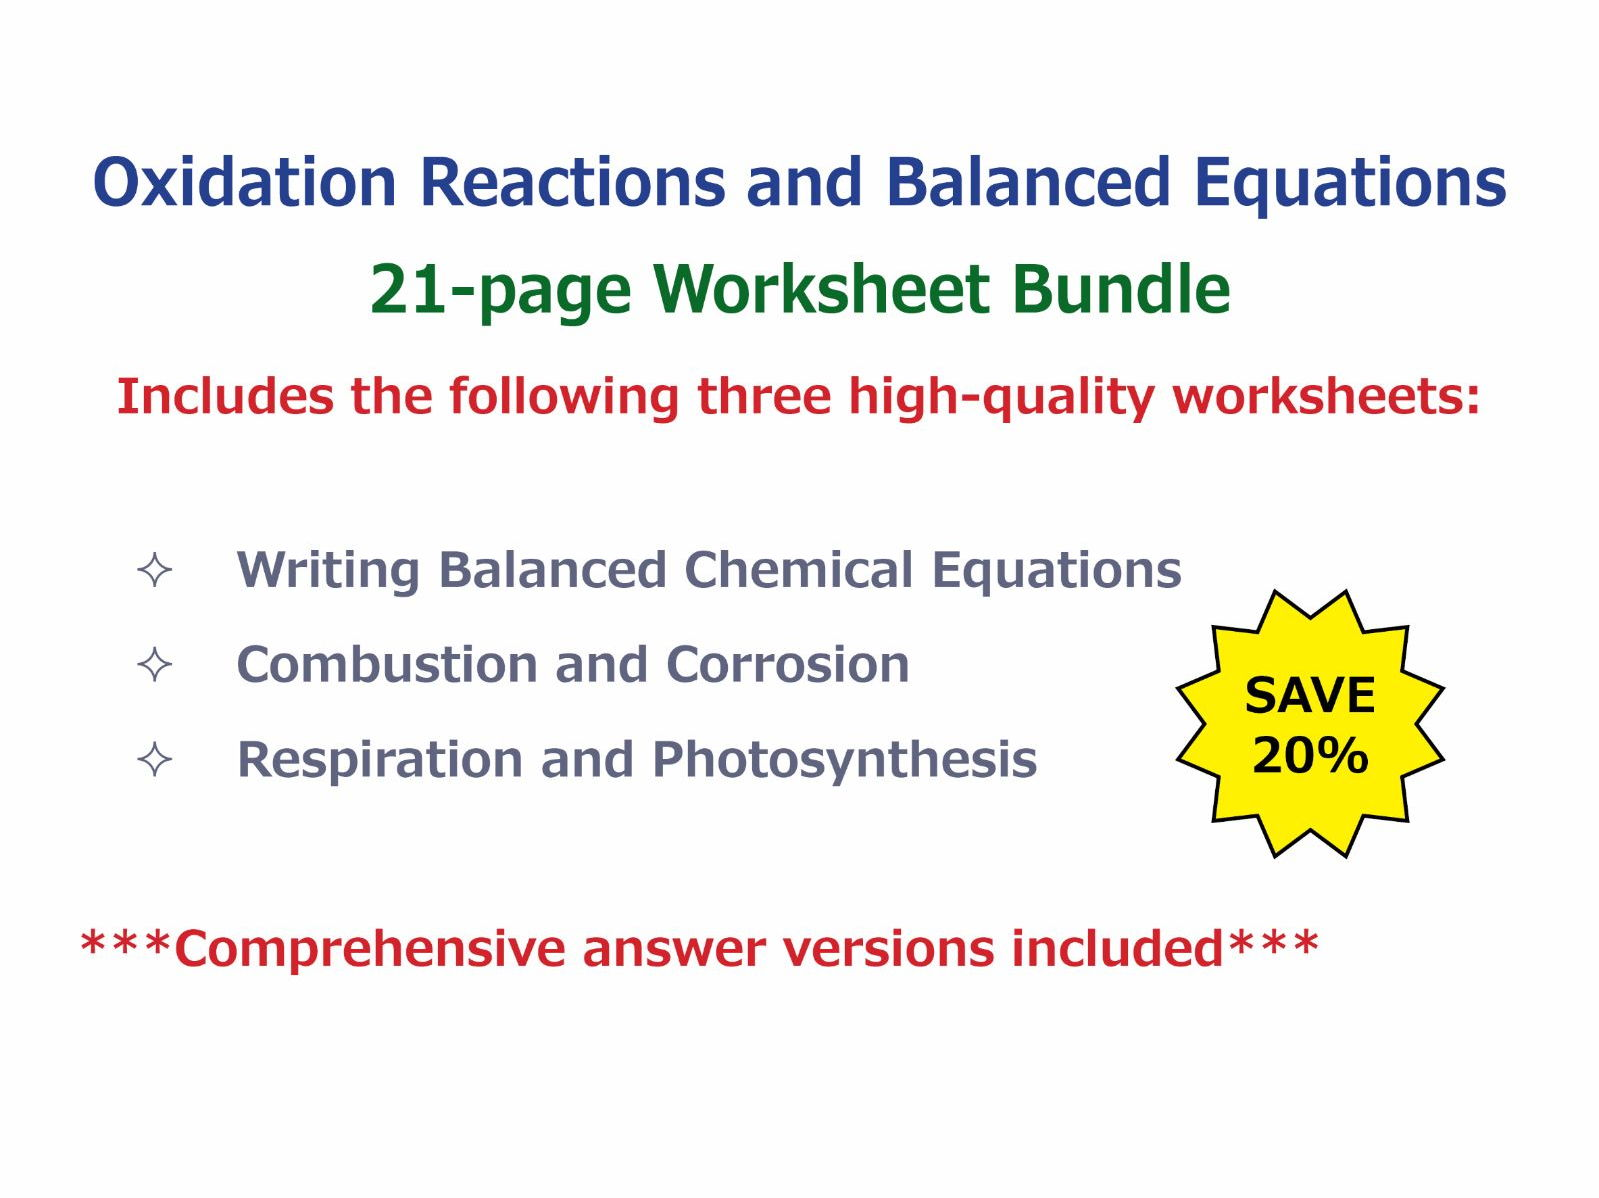 writing balanced equations Solutions for the balancing equations practice worksheet 1) 2 nano3 + pbo pb(no3)2 + na2o 2) 6 agi + fe2(co3)3 2 fei3 + 3 ag2co3.